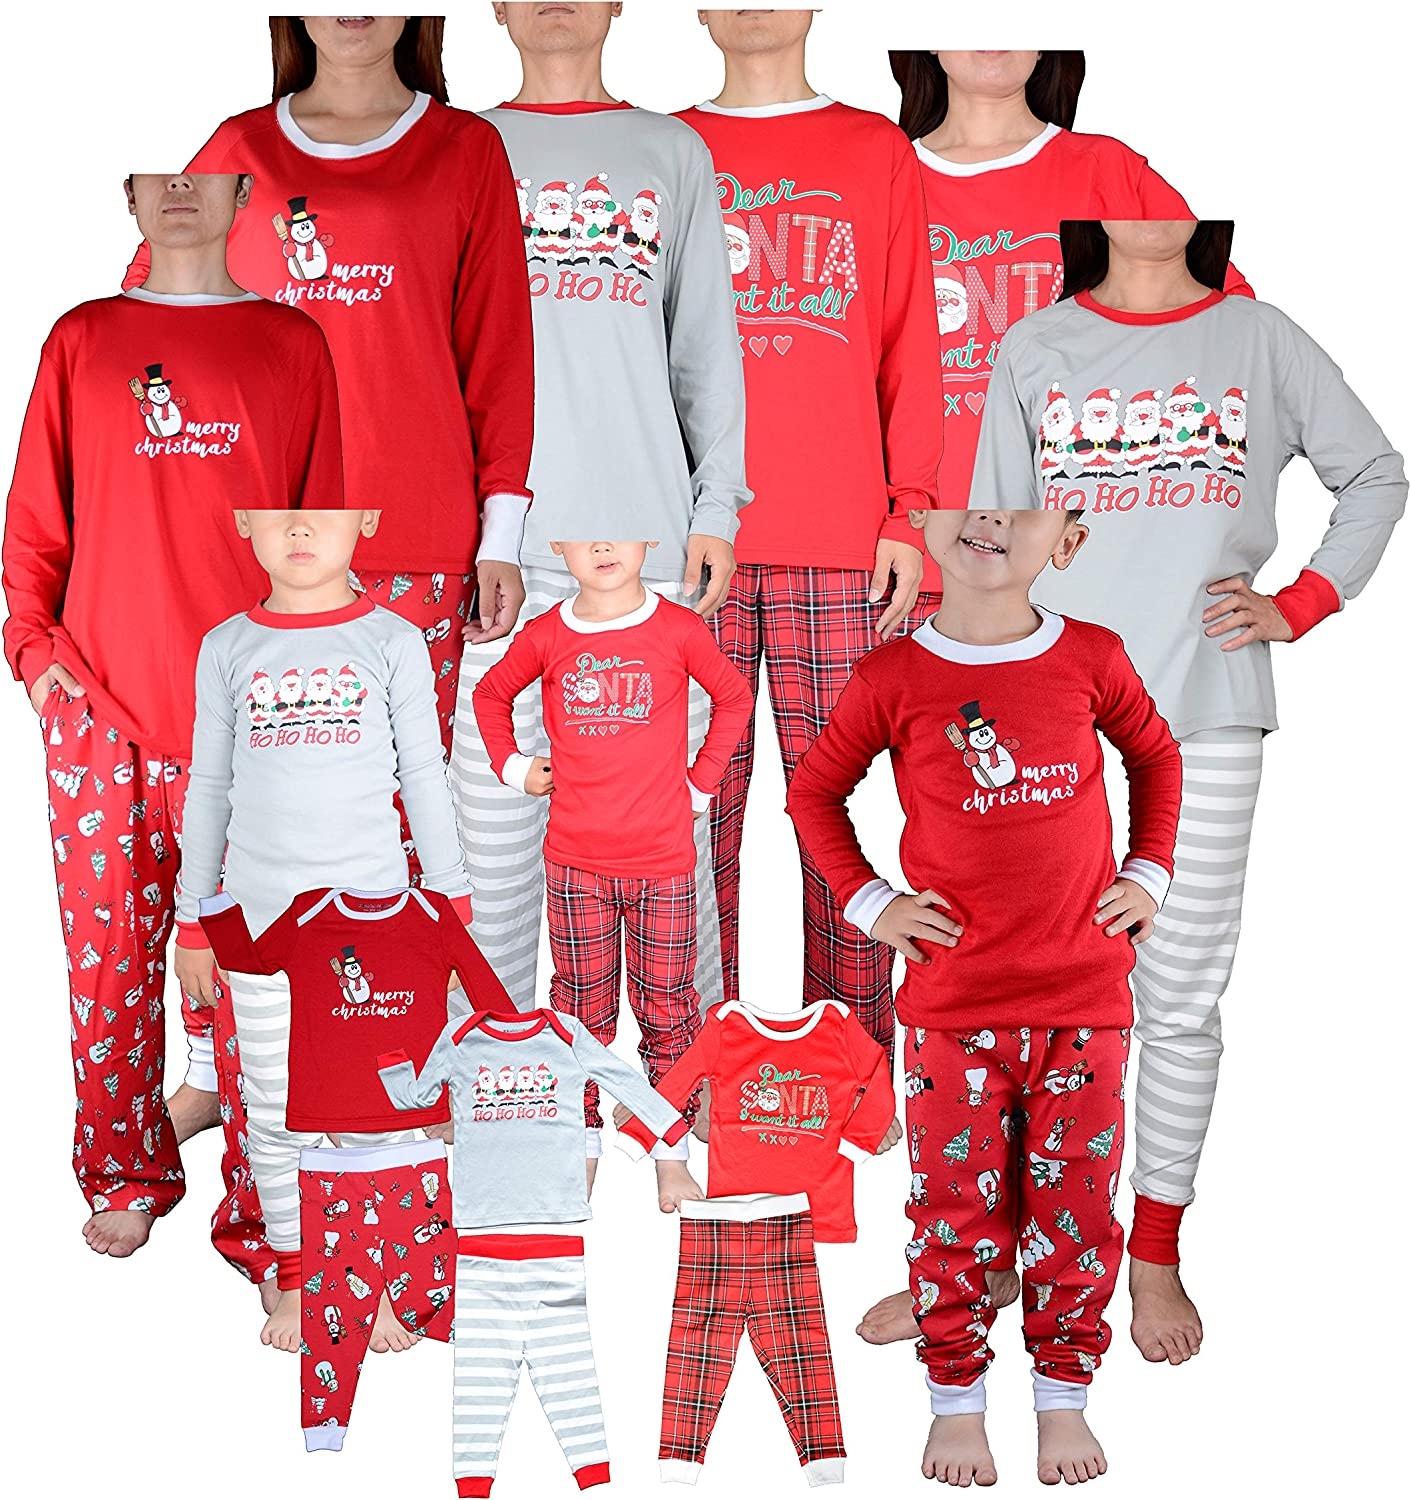 Christmas Family Free shipping anywhere in the nation Matching Pajama Pajamas M free Sets